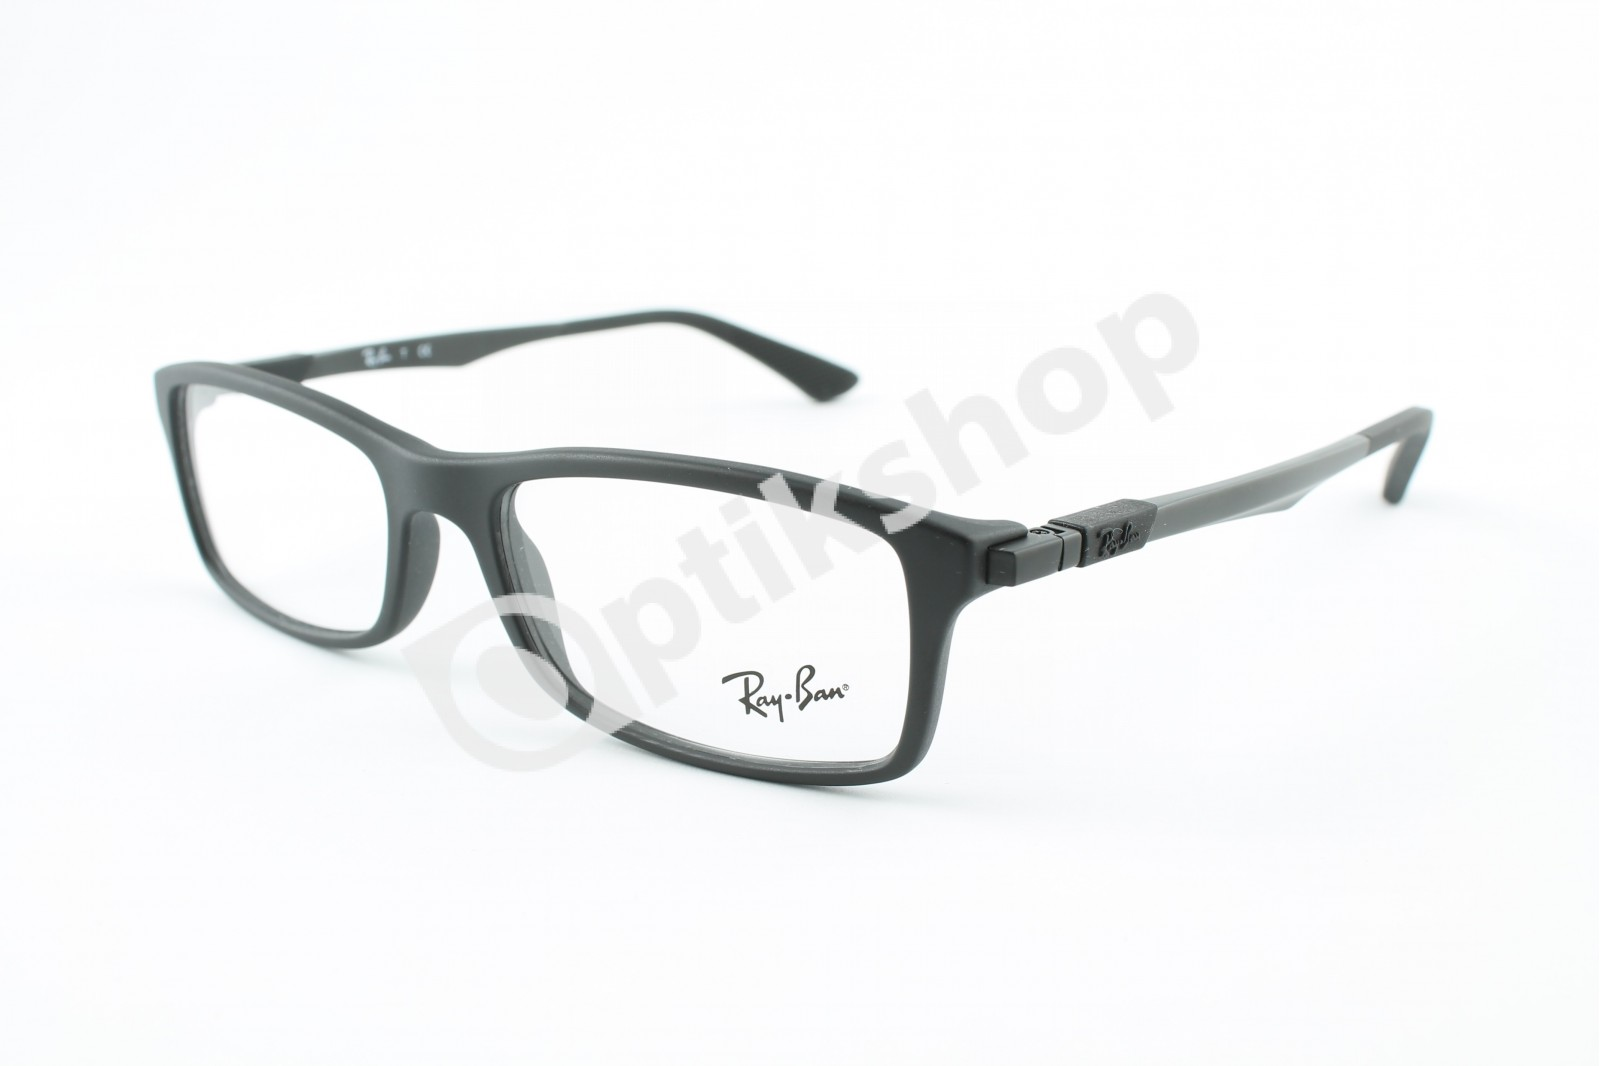 5f03274be8 Ray Ban 7017 - Psychopraticienne Bordeaux Rb 7017 »–› ÁrGép